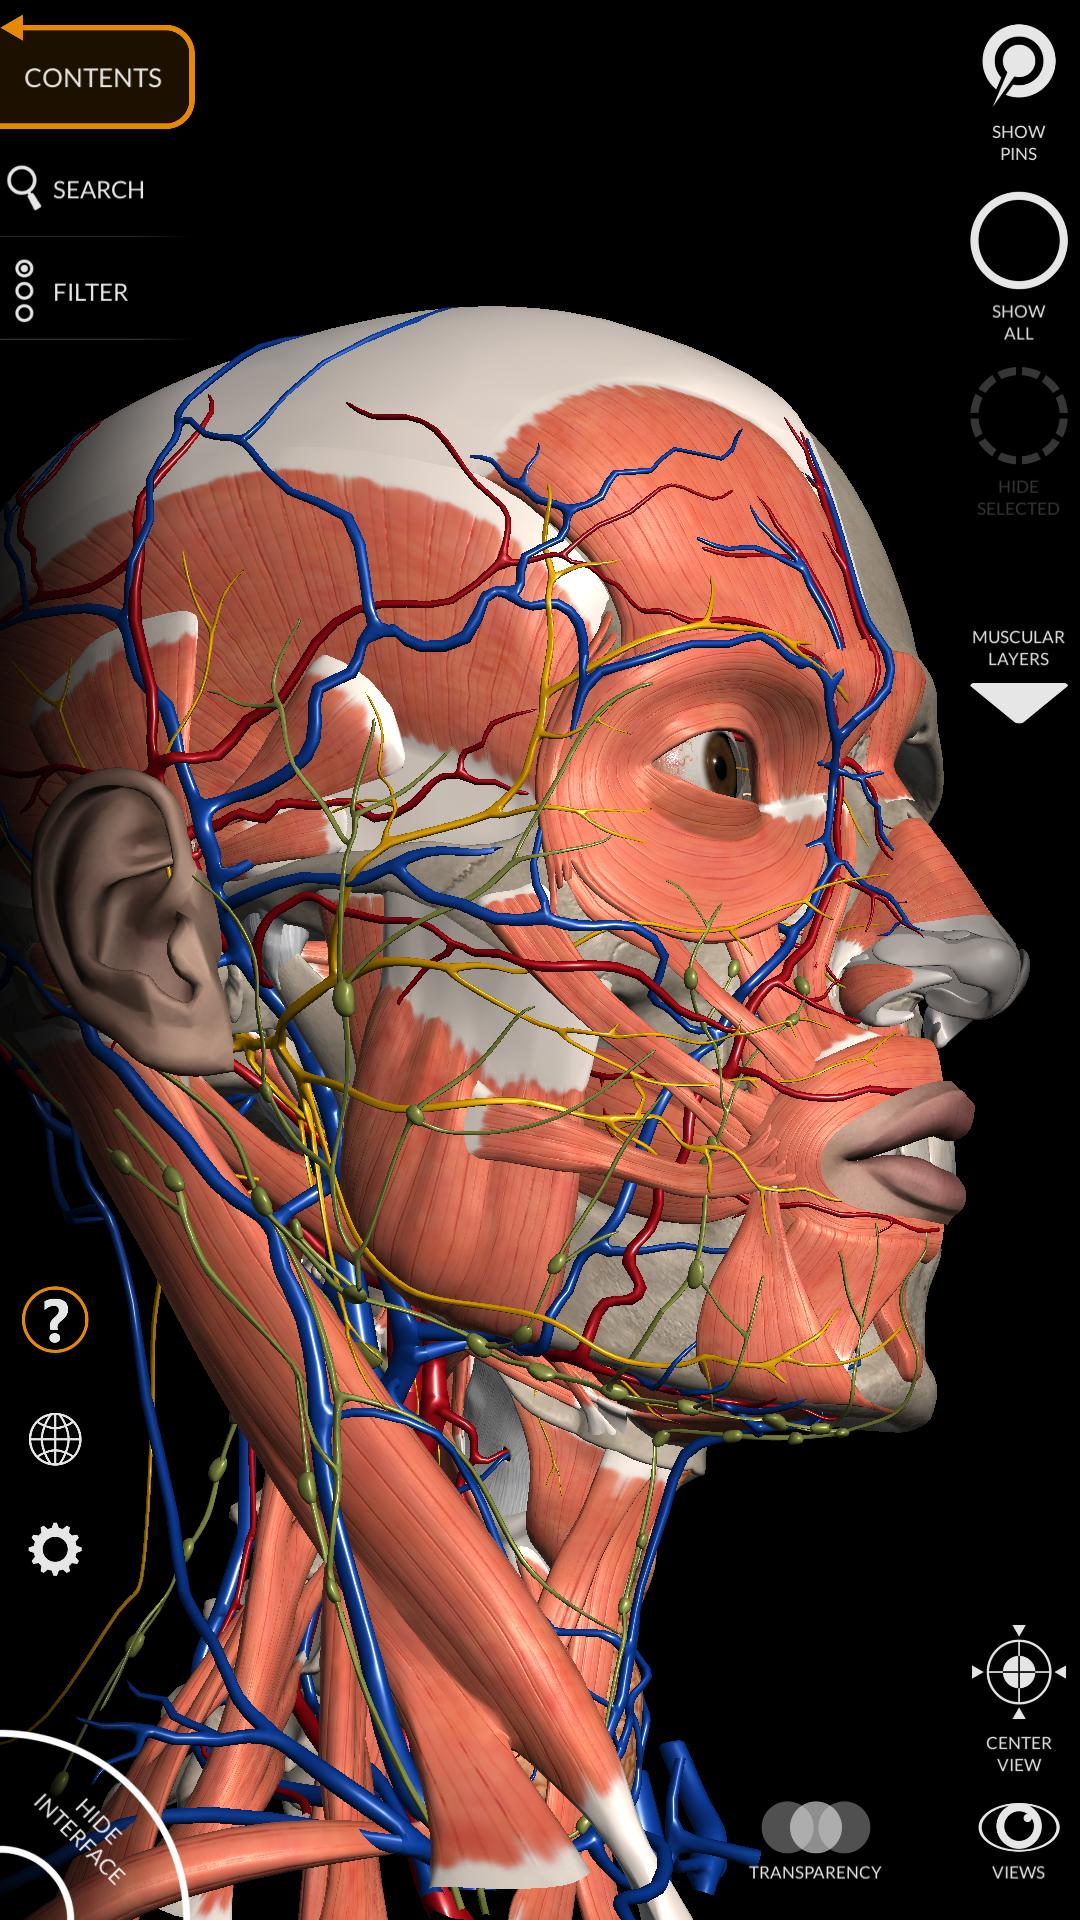 Anatomy 3D Atlas for Android - APK Download